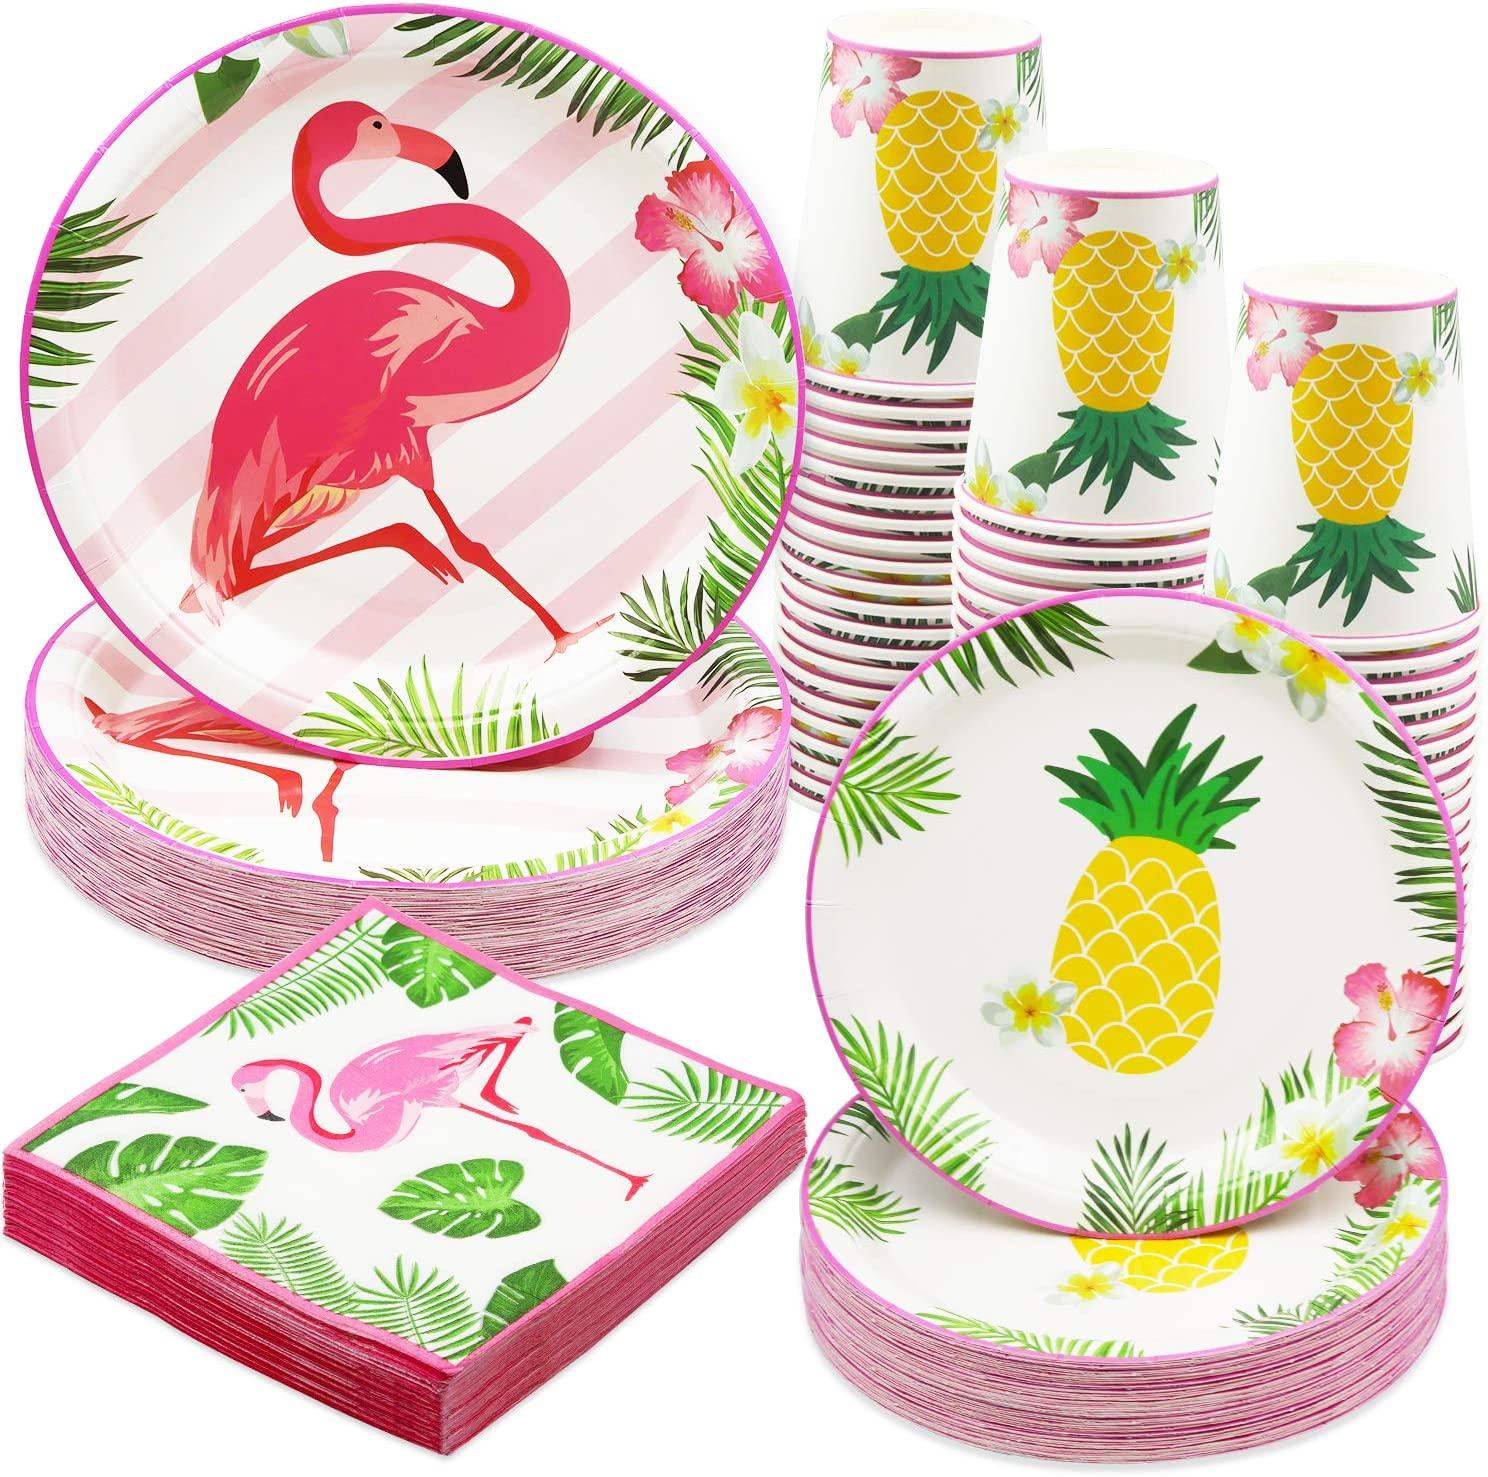 Larchio Hawaiin Luau Party Plates and Napkin Party Supplies, Flamingo Paper Plates and Cup, Paper Napkins for Tropical Luau BirthdayParty Tableware, Serve 24 Guest